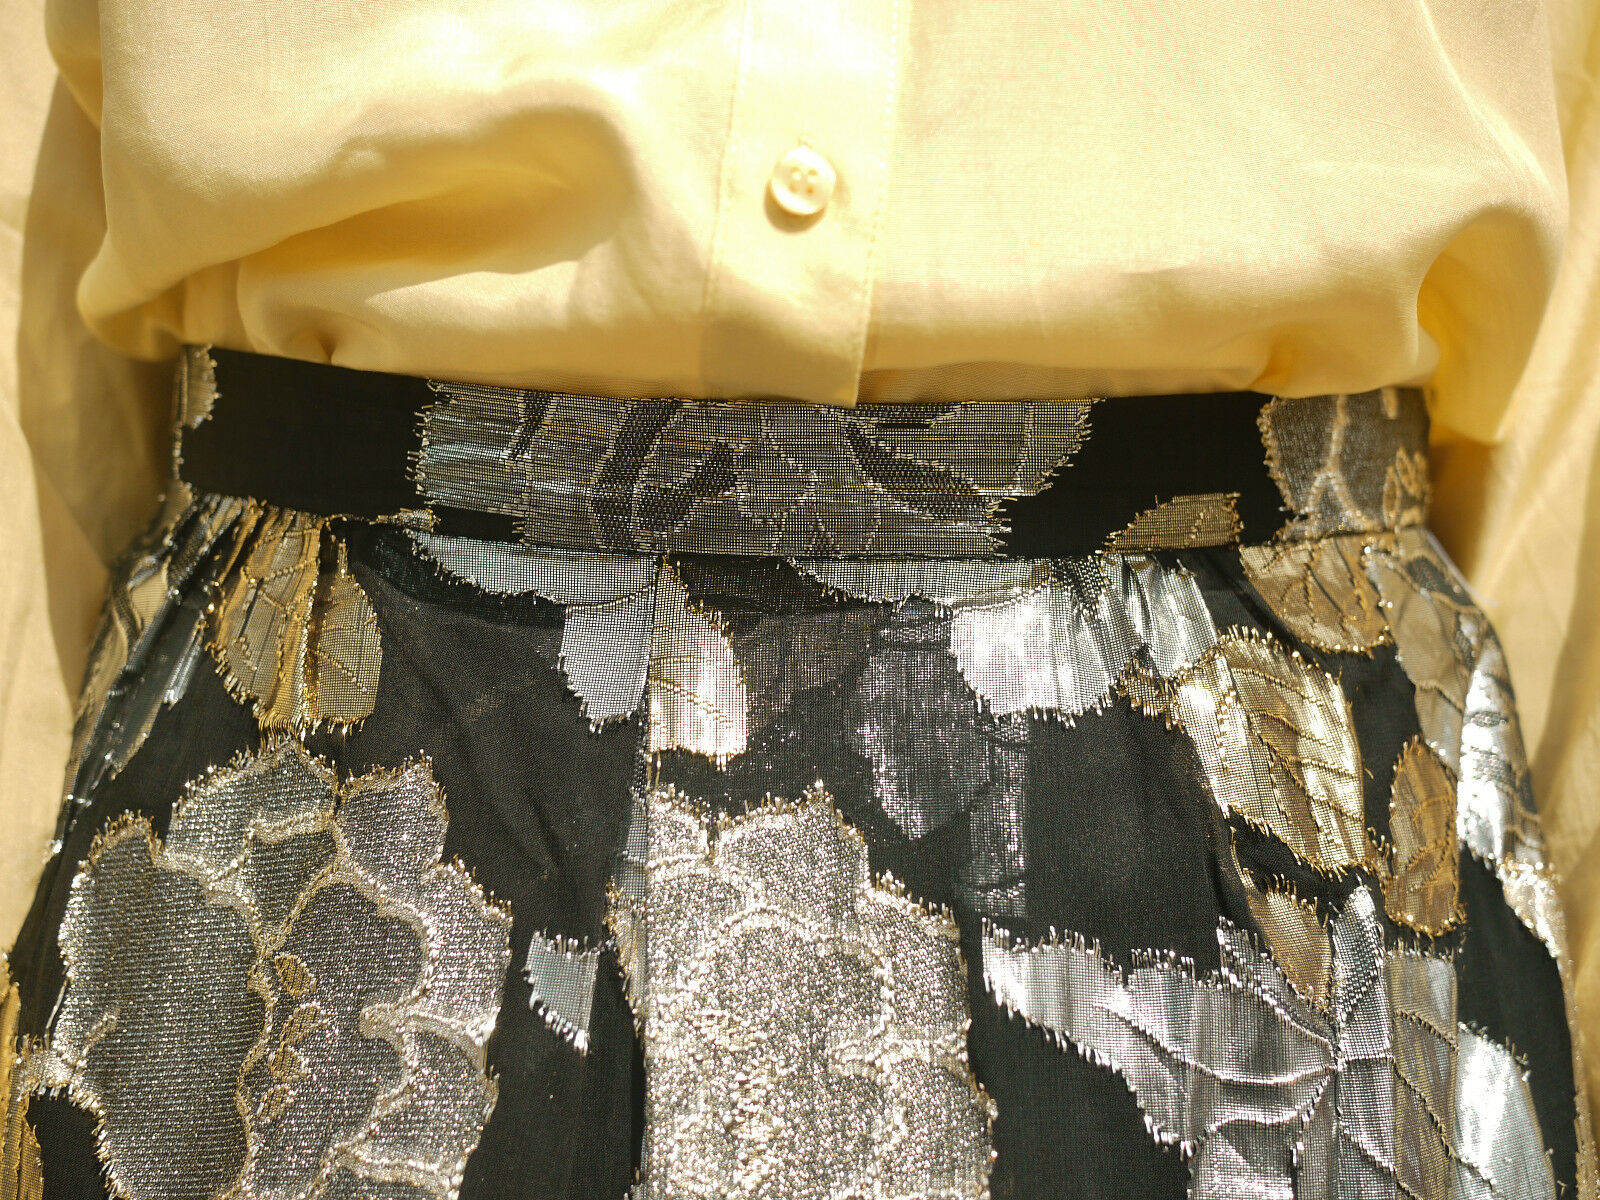 Donna gonna fiori oro oro oro argento 90er True Vintage 90's SKIRT METALLIC FLOWER 2d8ad0